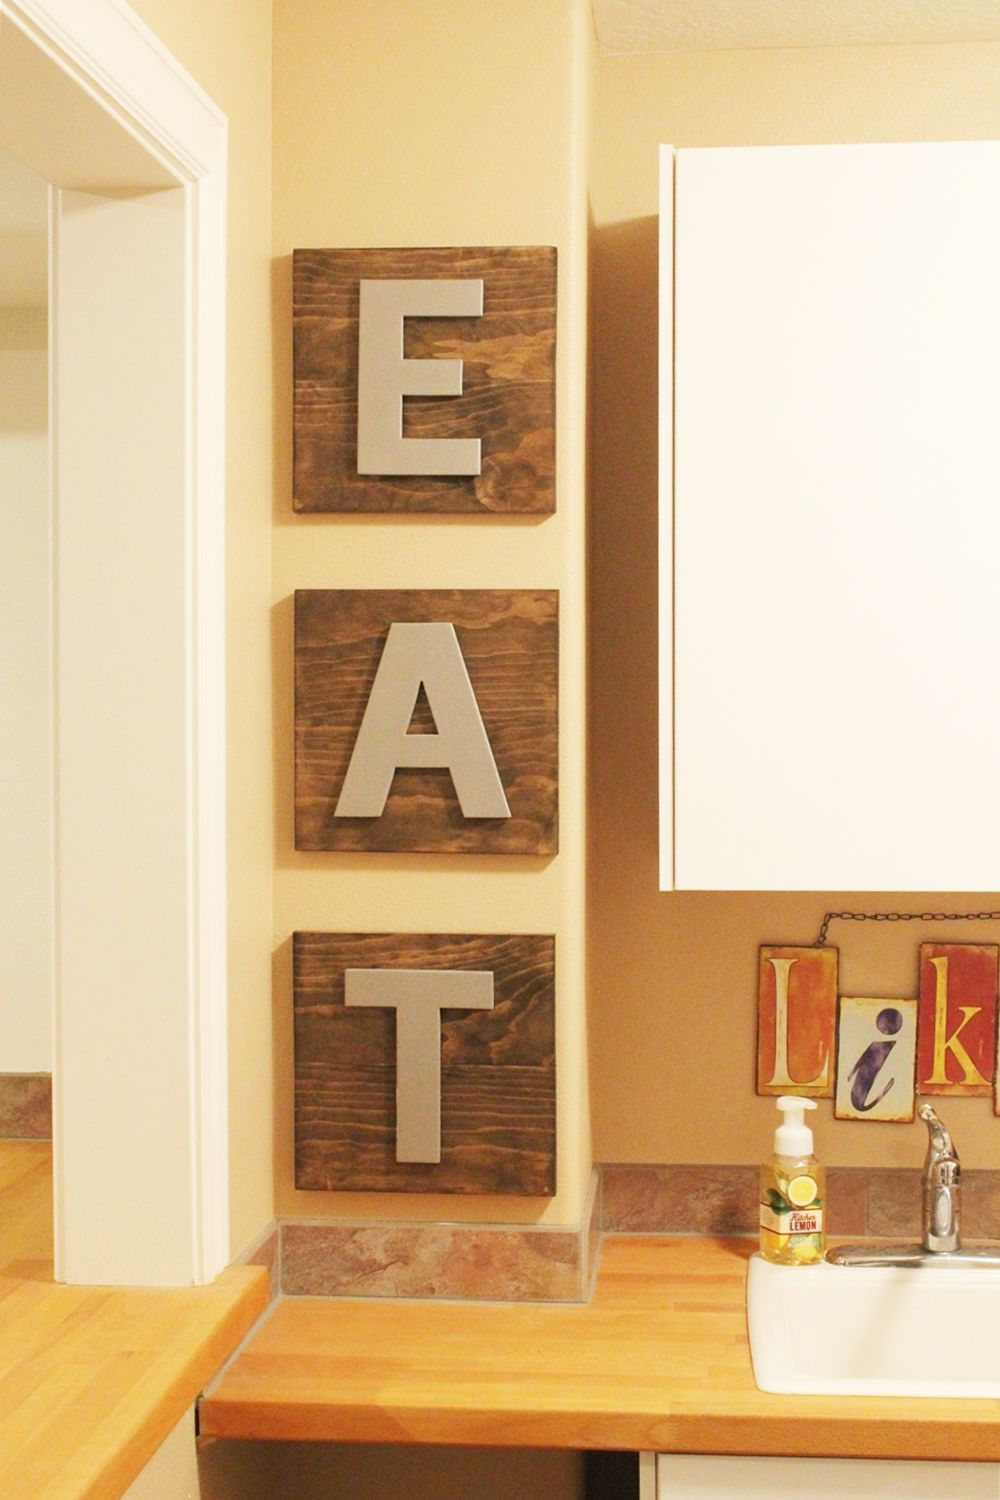 kitchen-decor-with-diy-eat-letters